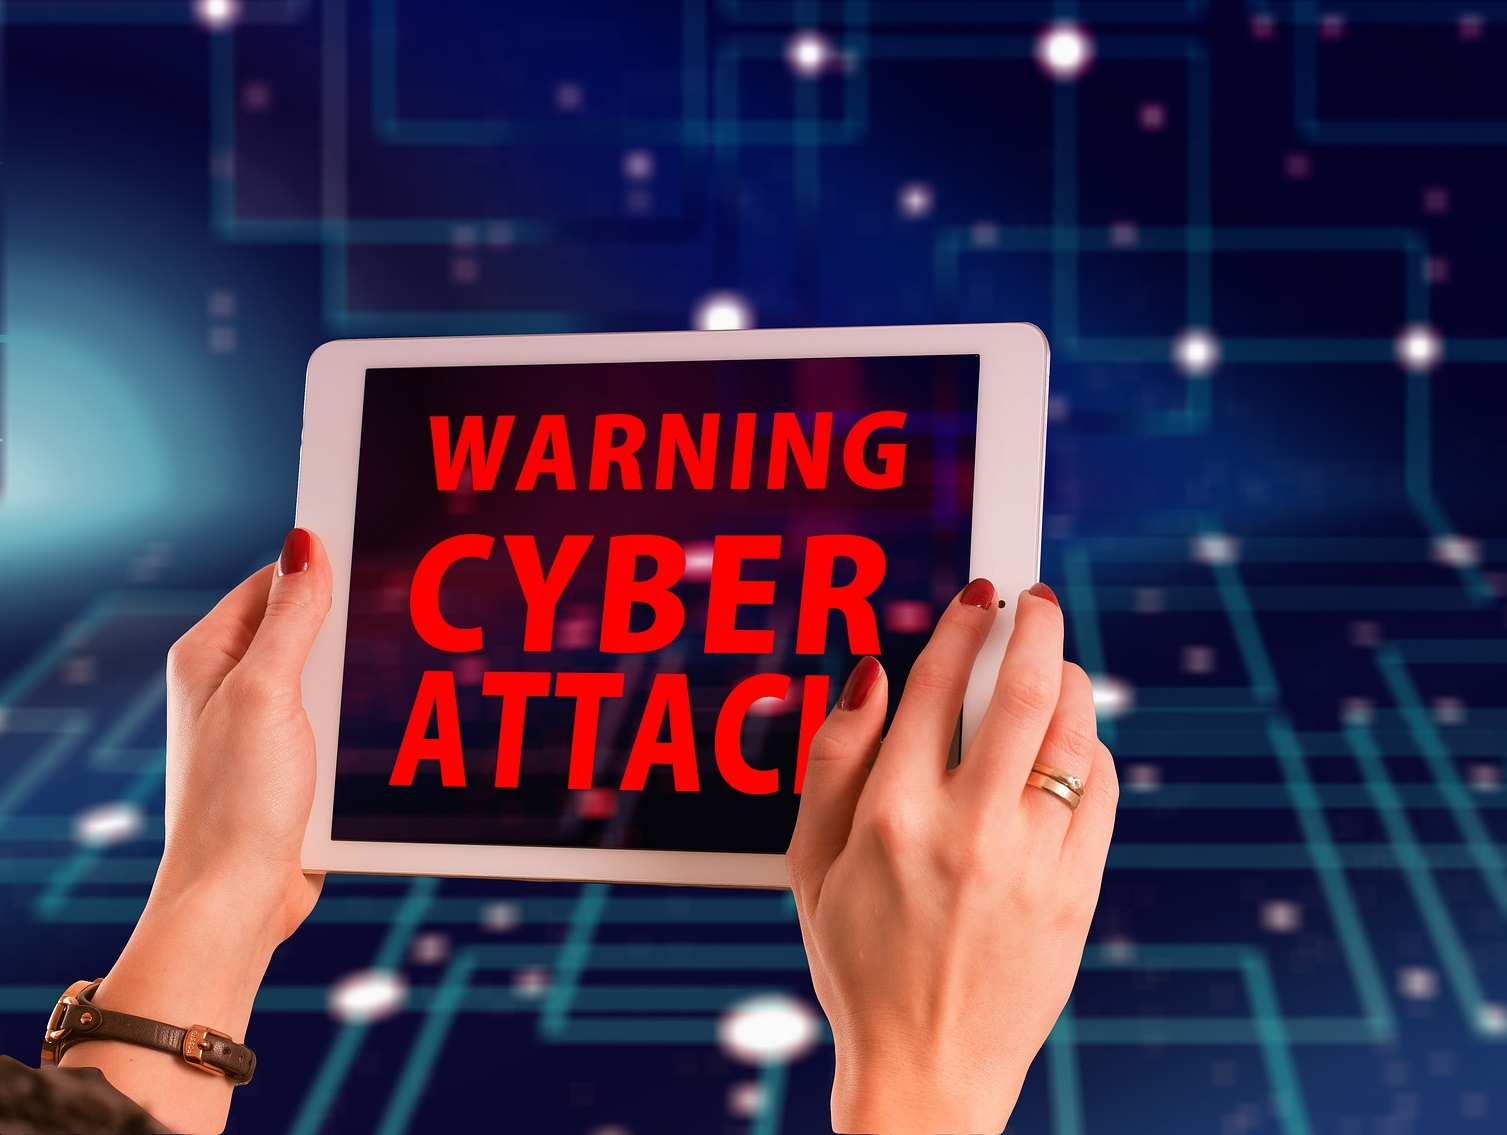 Recent Malware Attacks Show Why You Need to Protect Your Data